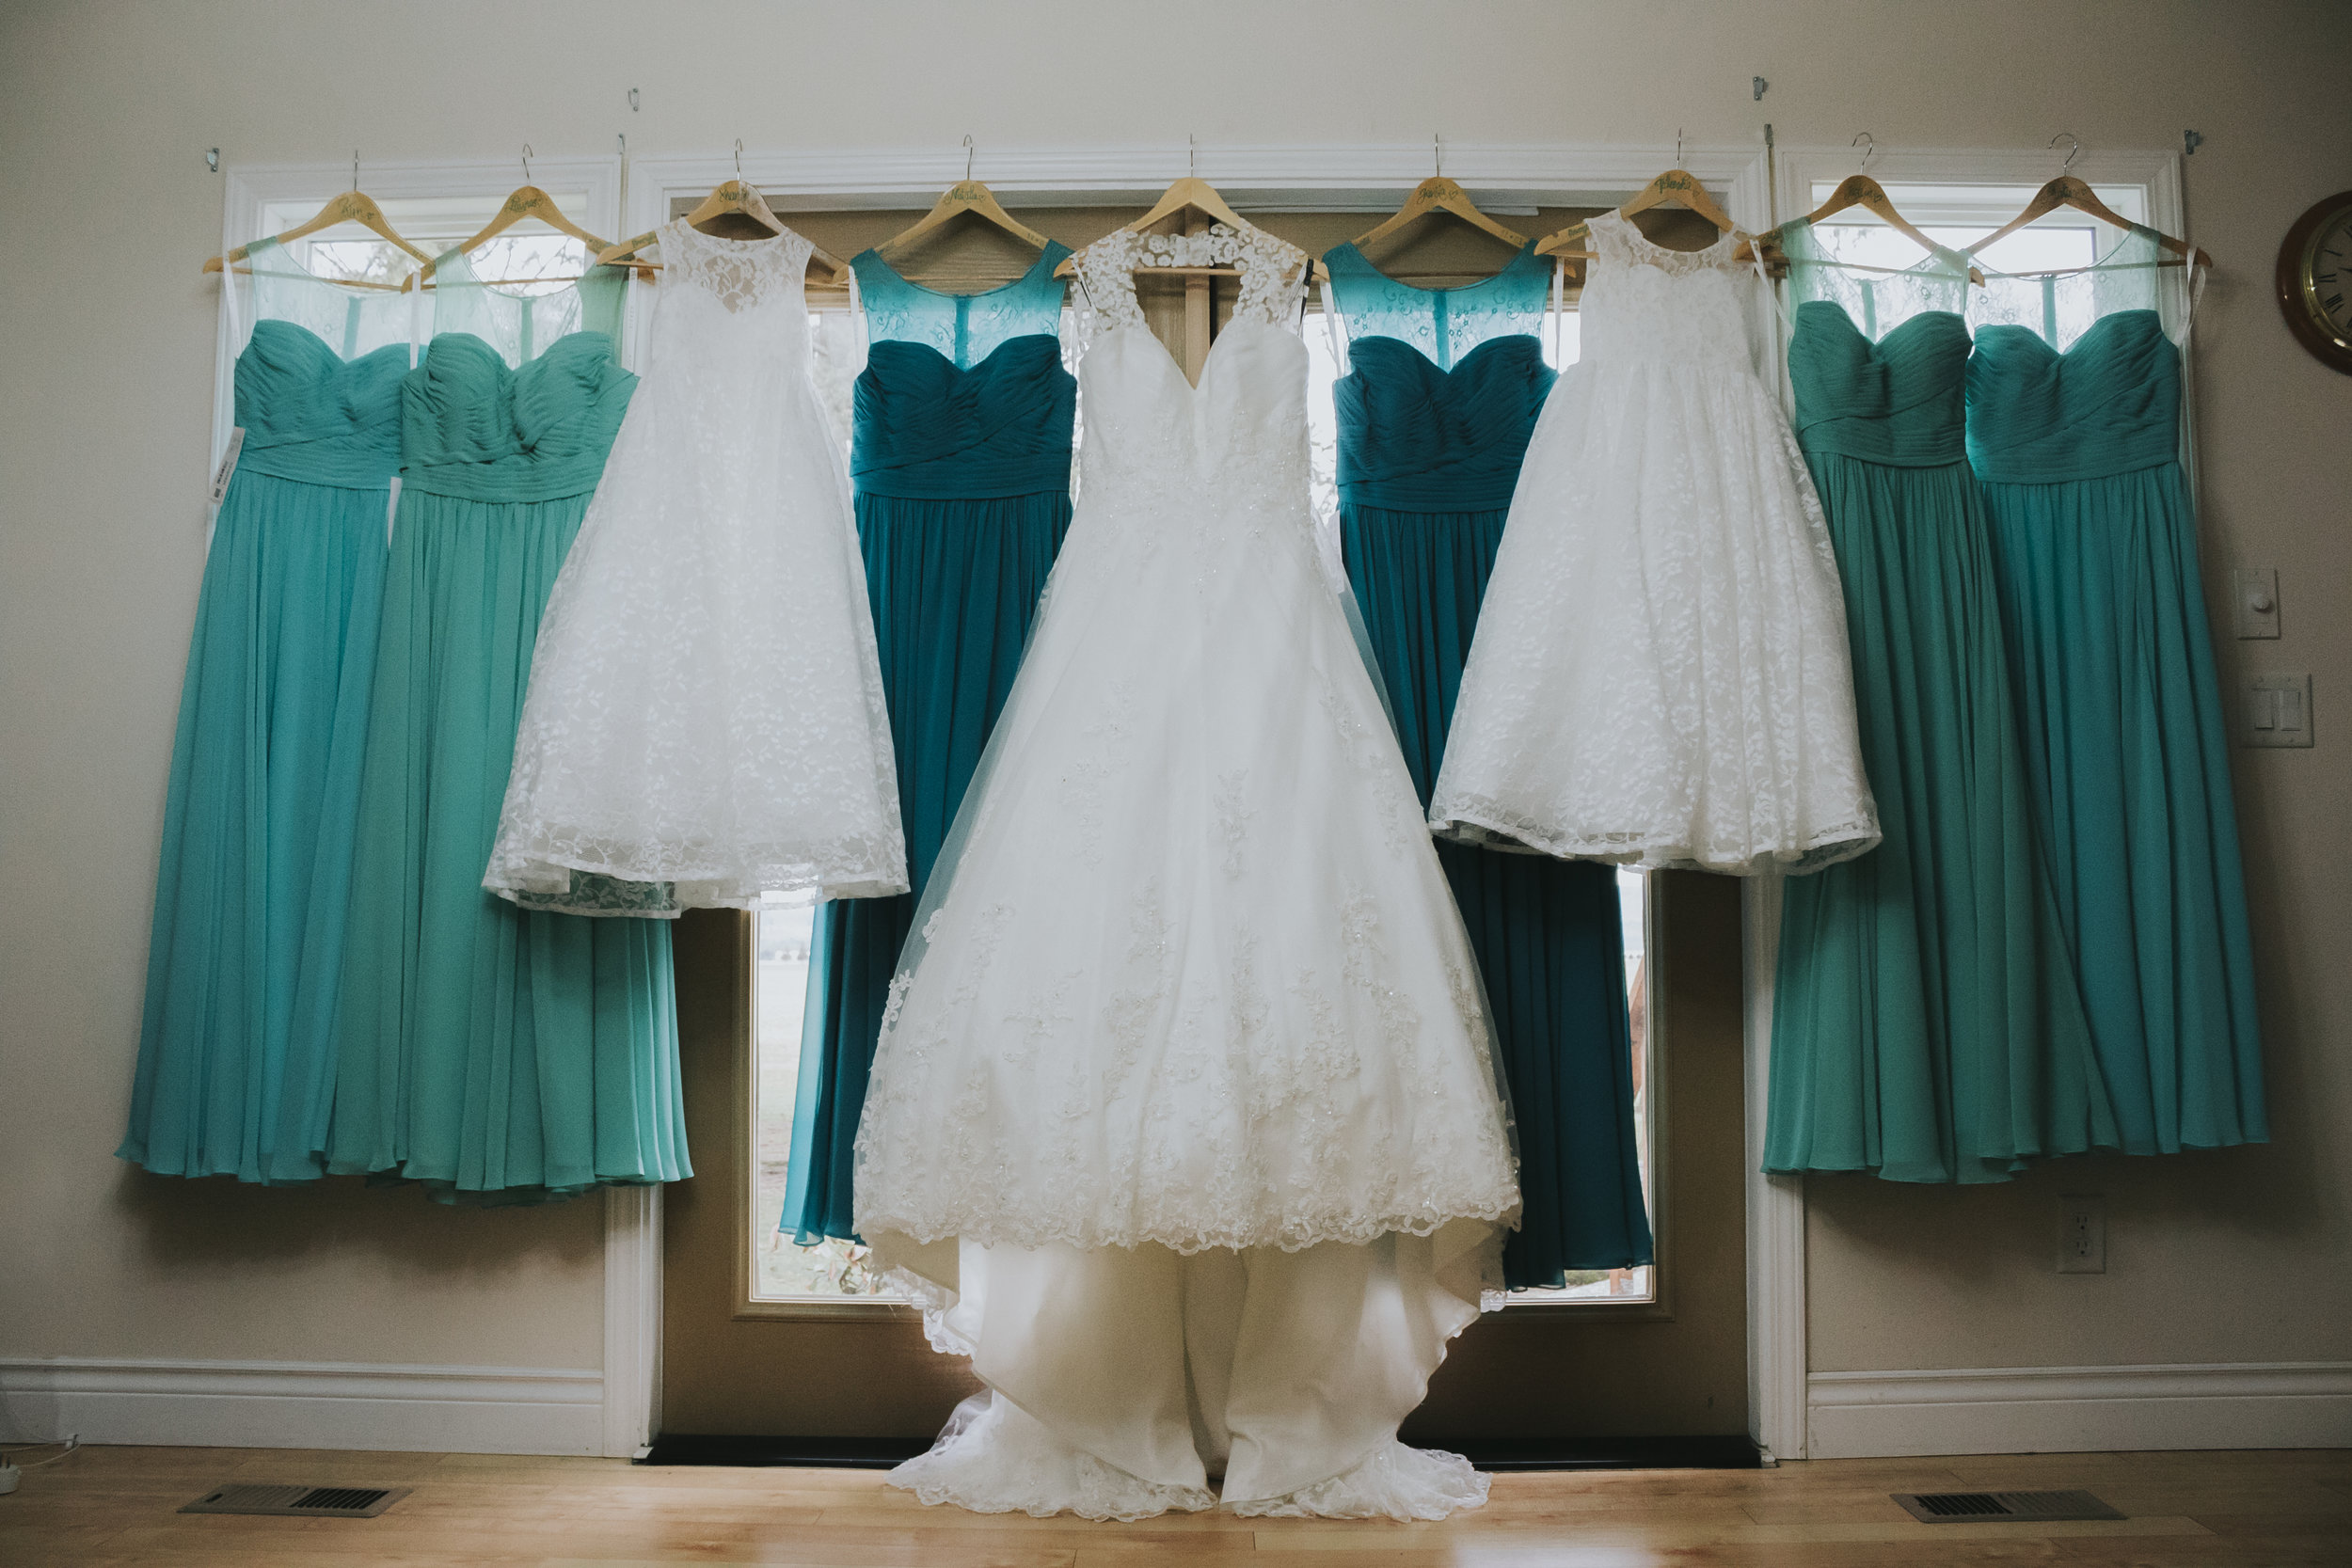 Wedding dress and bridesmaids dresses hanging. A rainy forest wedding in Lynden Washington, featuring teal blue accents, rustic details, umbrellas and a large bridal party.  #rain #wedding #lynden  #washington #umbrella #spring #teal #grey #brown #trees #romantic #documentarywedding #unposed #romanticposes #couple #largebridalparty   Photography by Christina Voorhorst of Mimsical Photography. Do not alter, crop, edit or share these images without proper credit or permission. www.mimsicalphotography.com